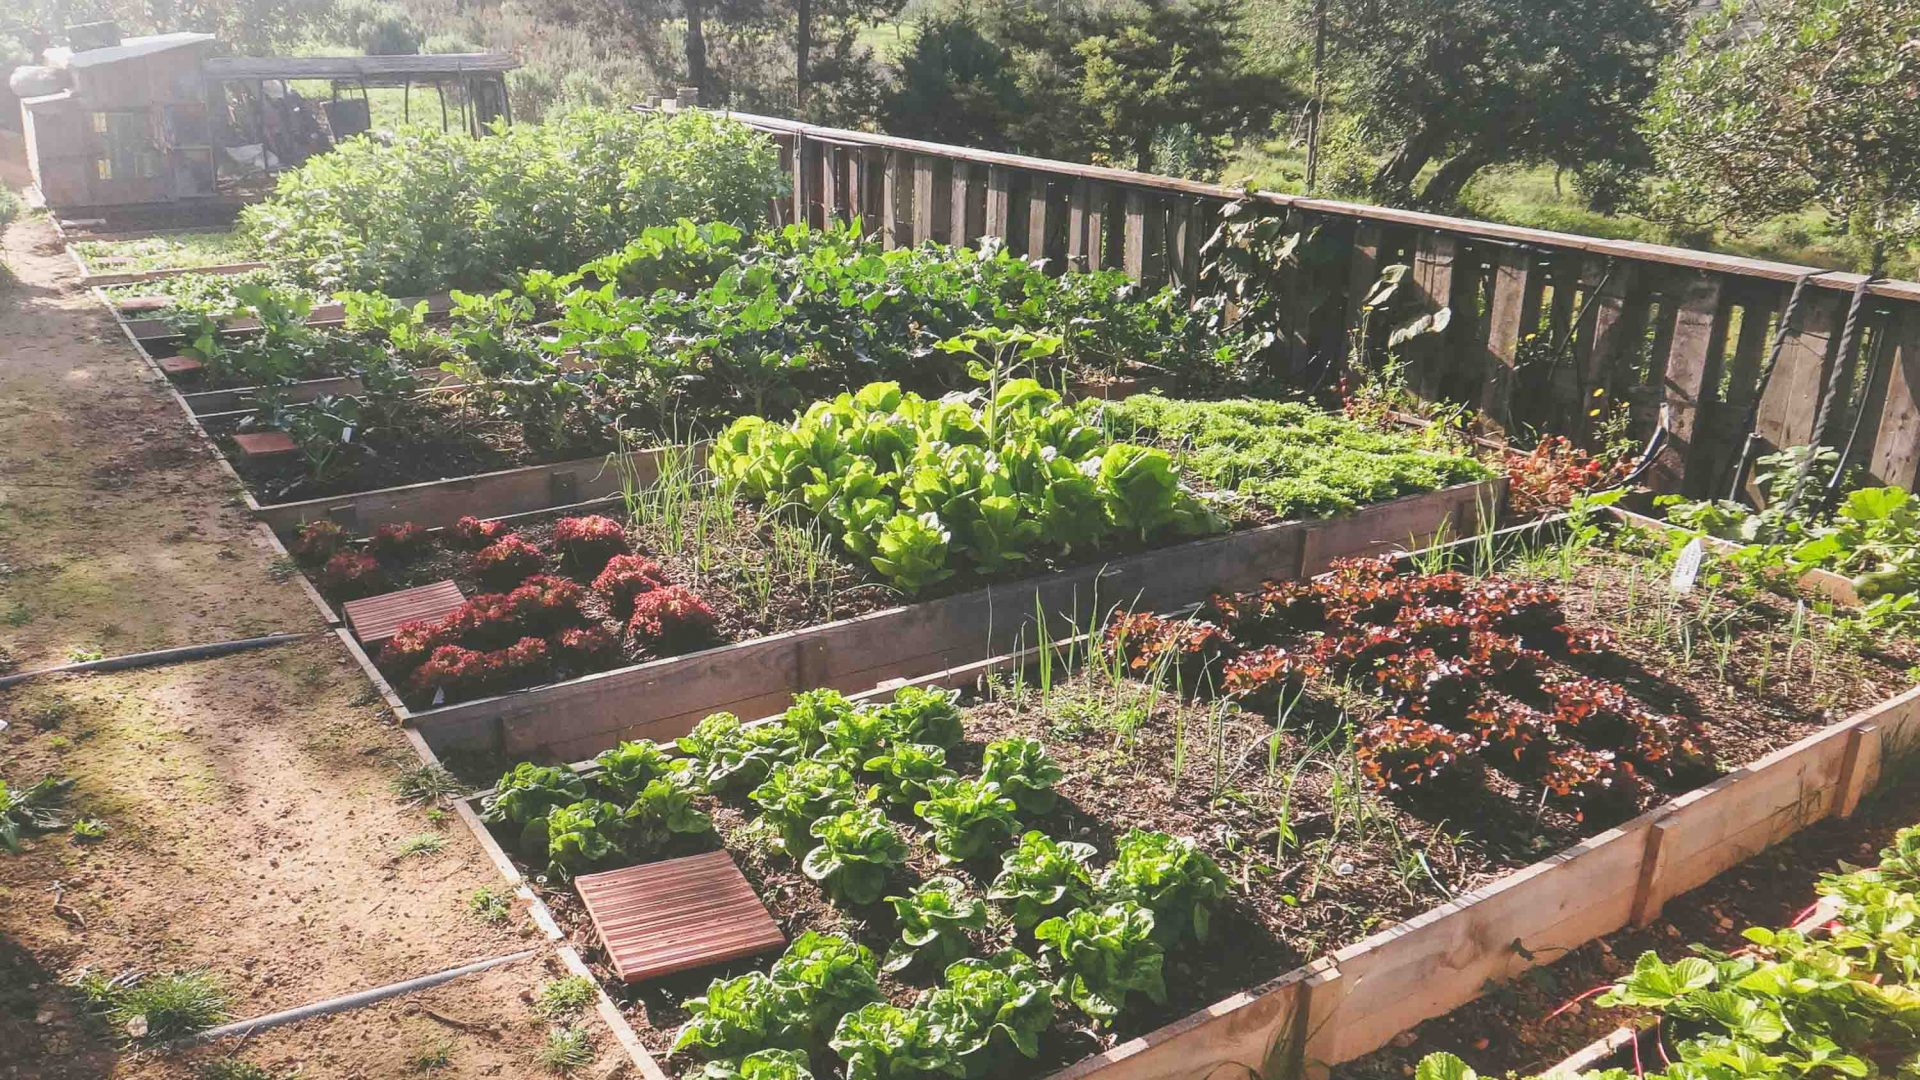 The 14 vegetable gardens at Casita Verde use recycled water.